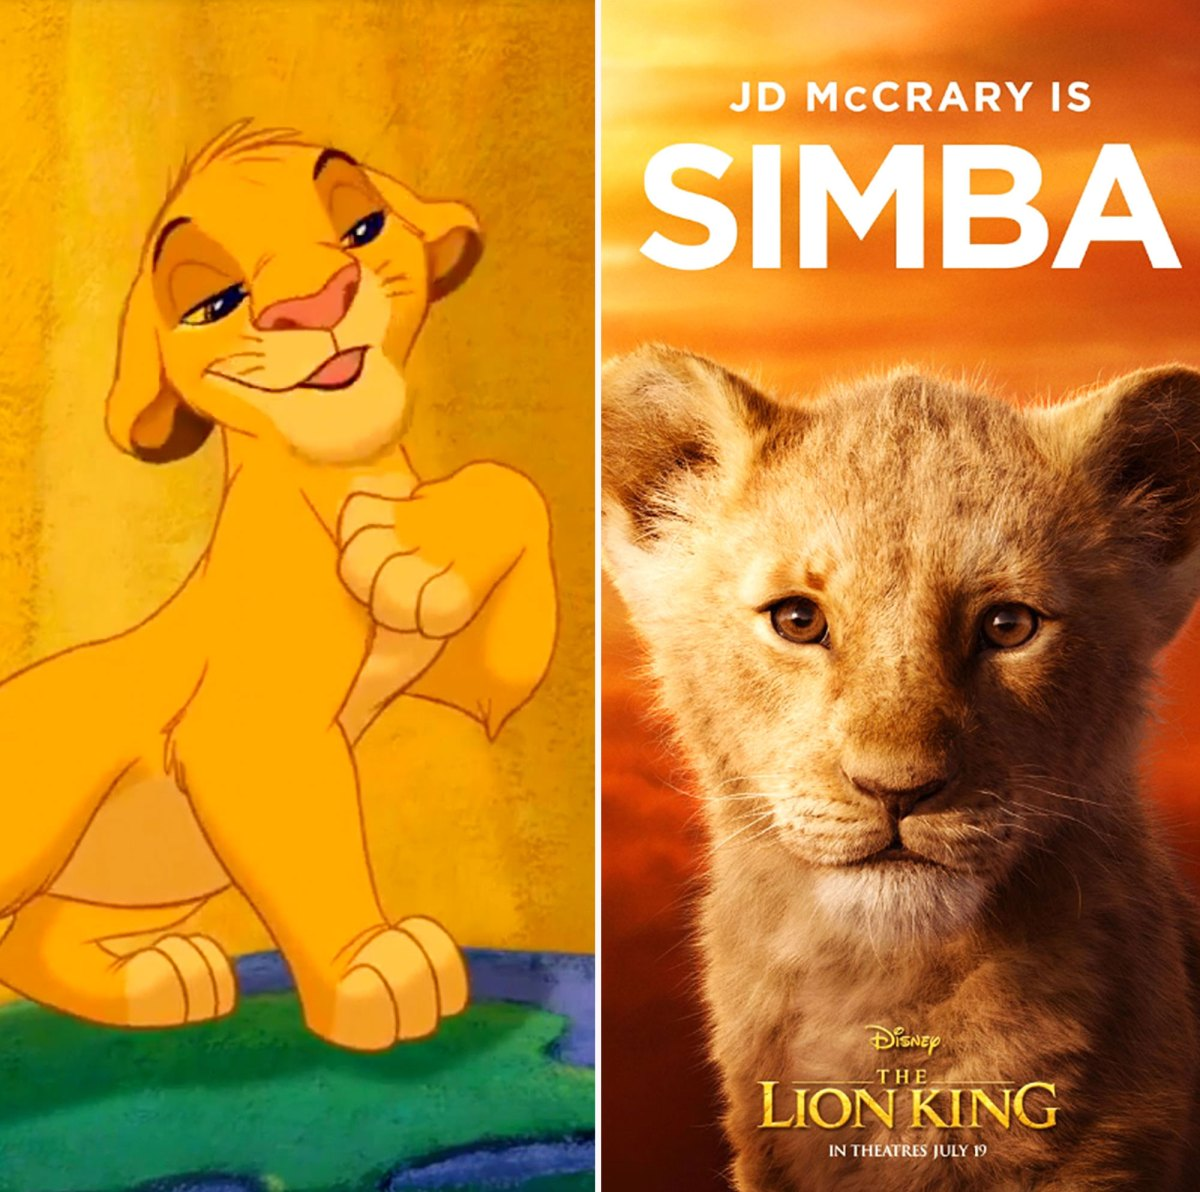 The Lion King Compare The Animated And Live Action Characters